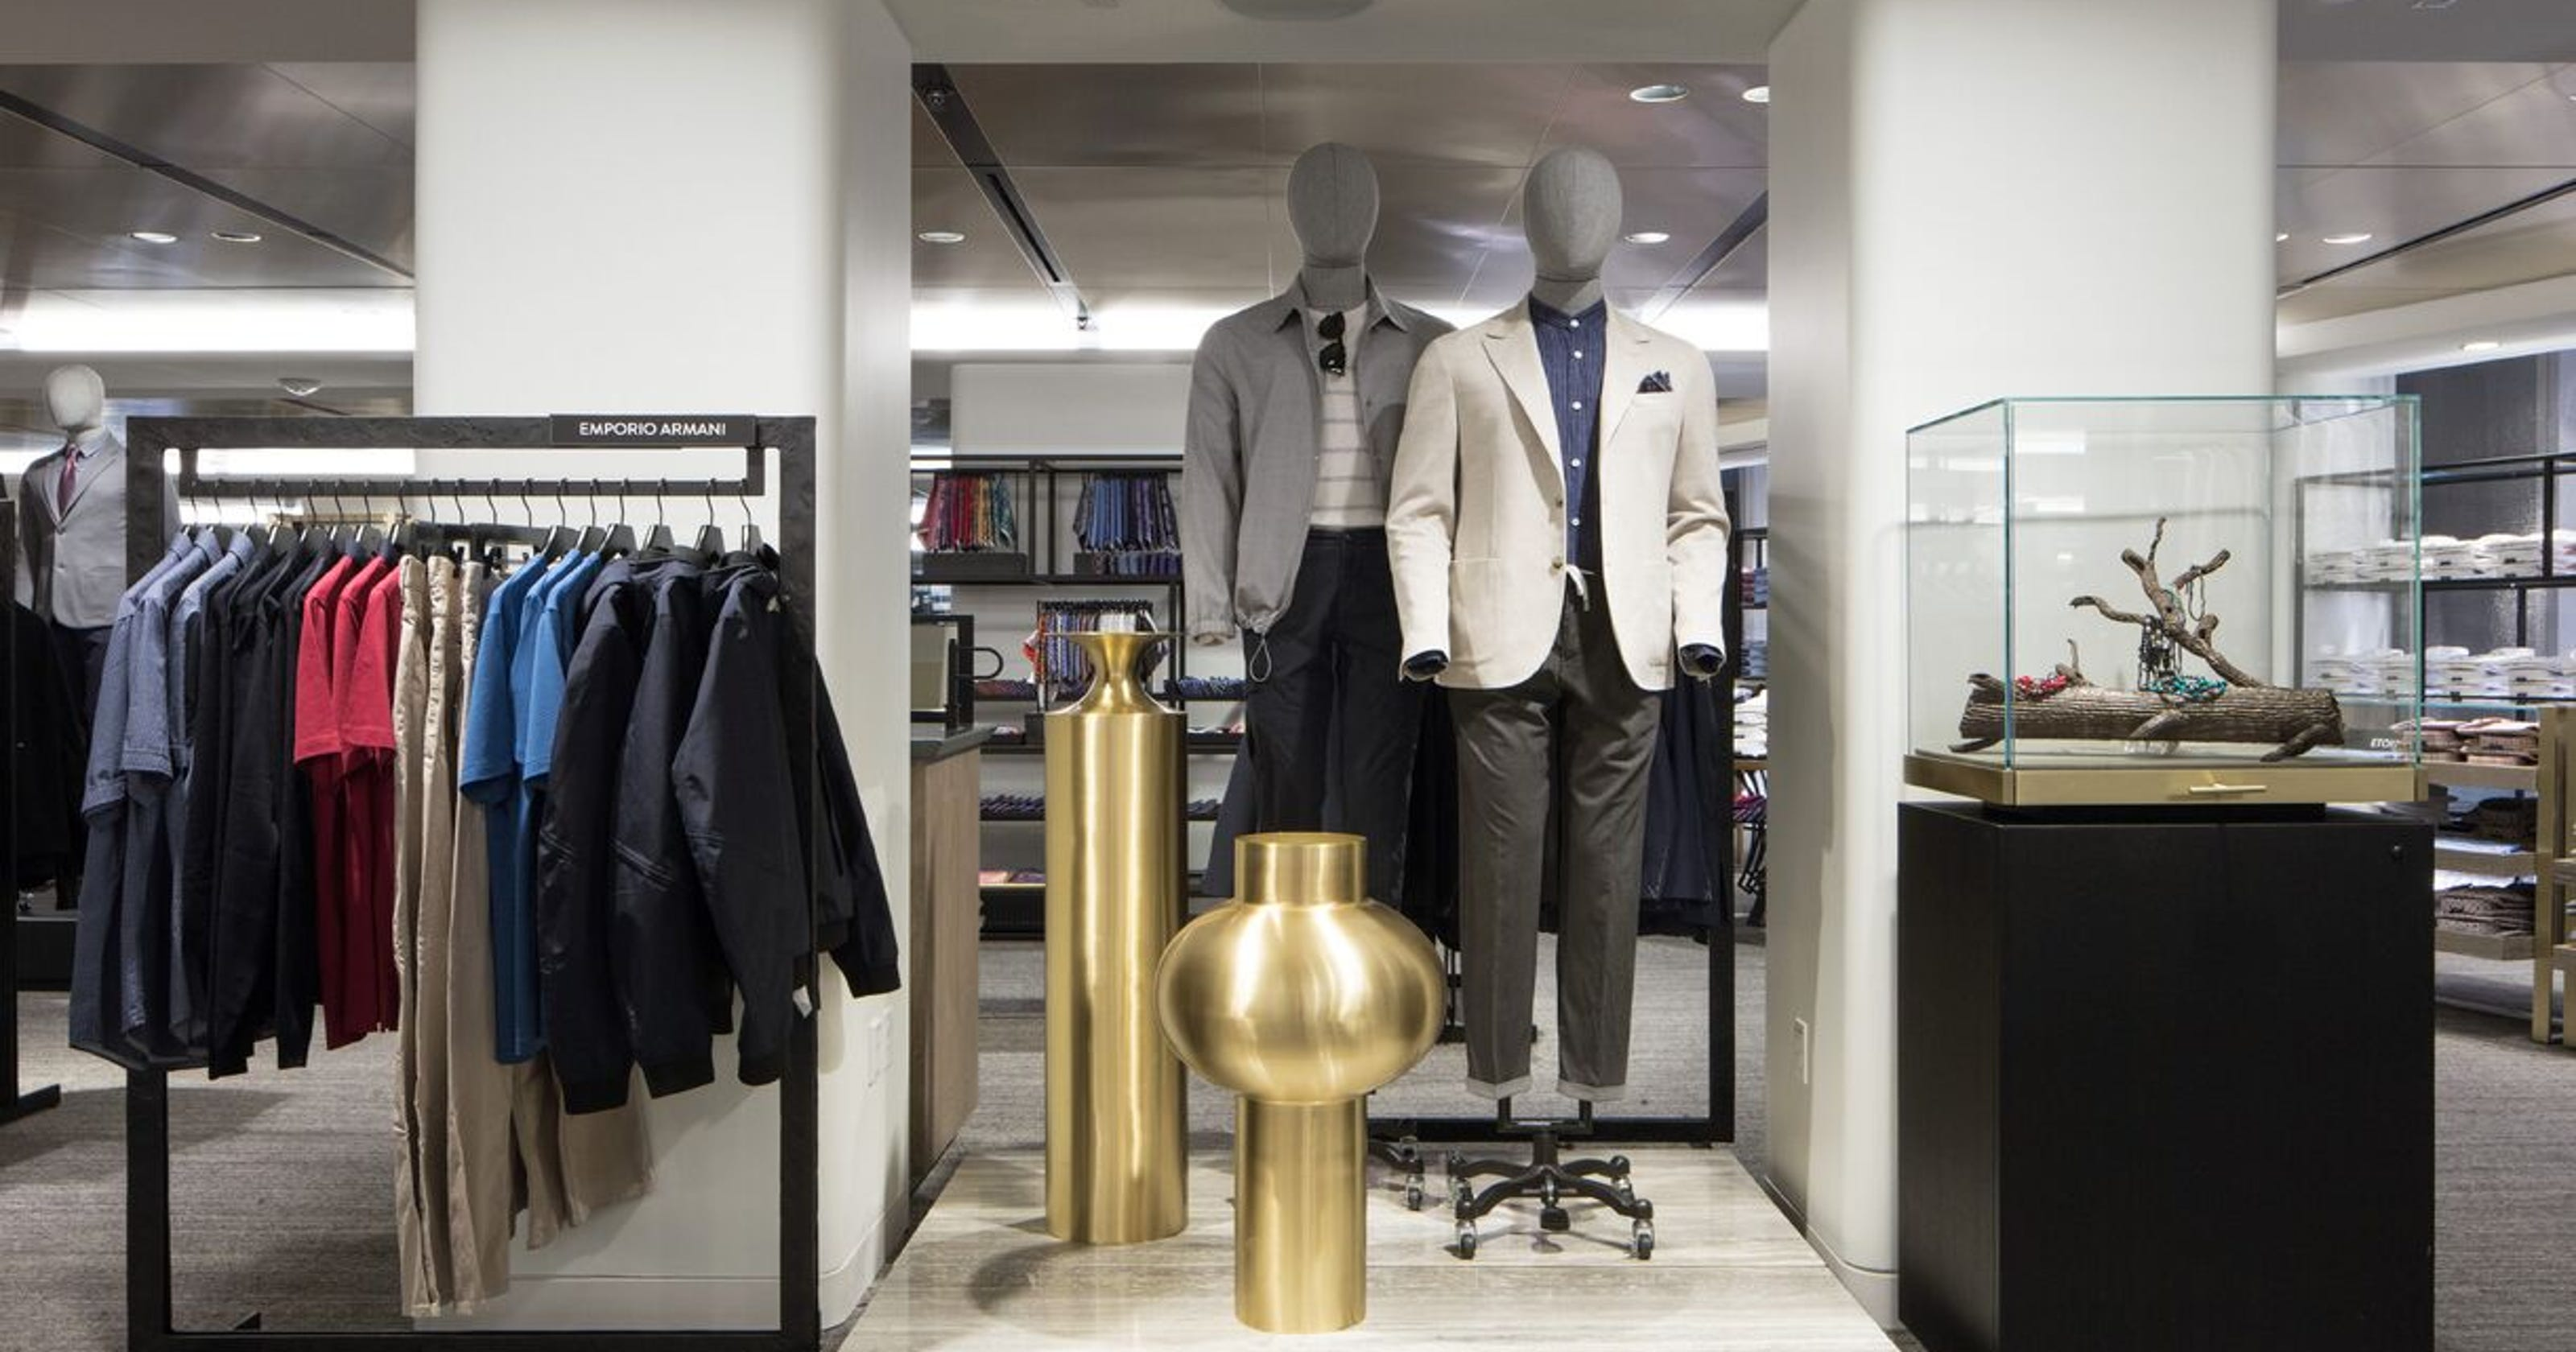 aa870c28fa7 Nordstrom s first NYC store offers cocktails